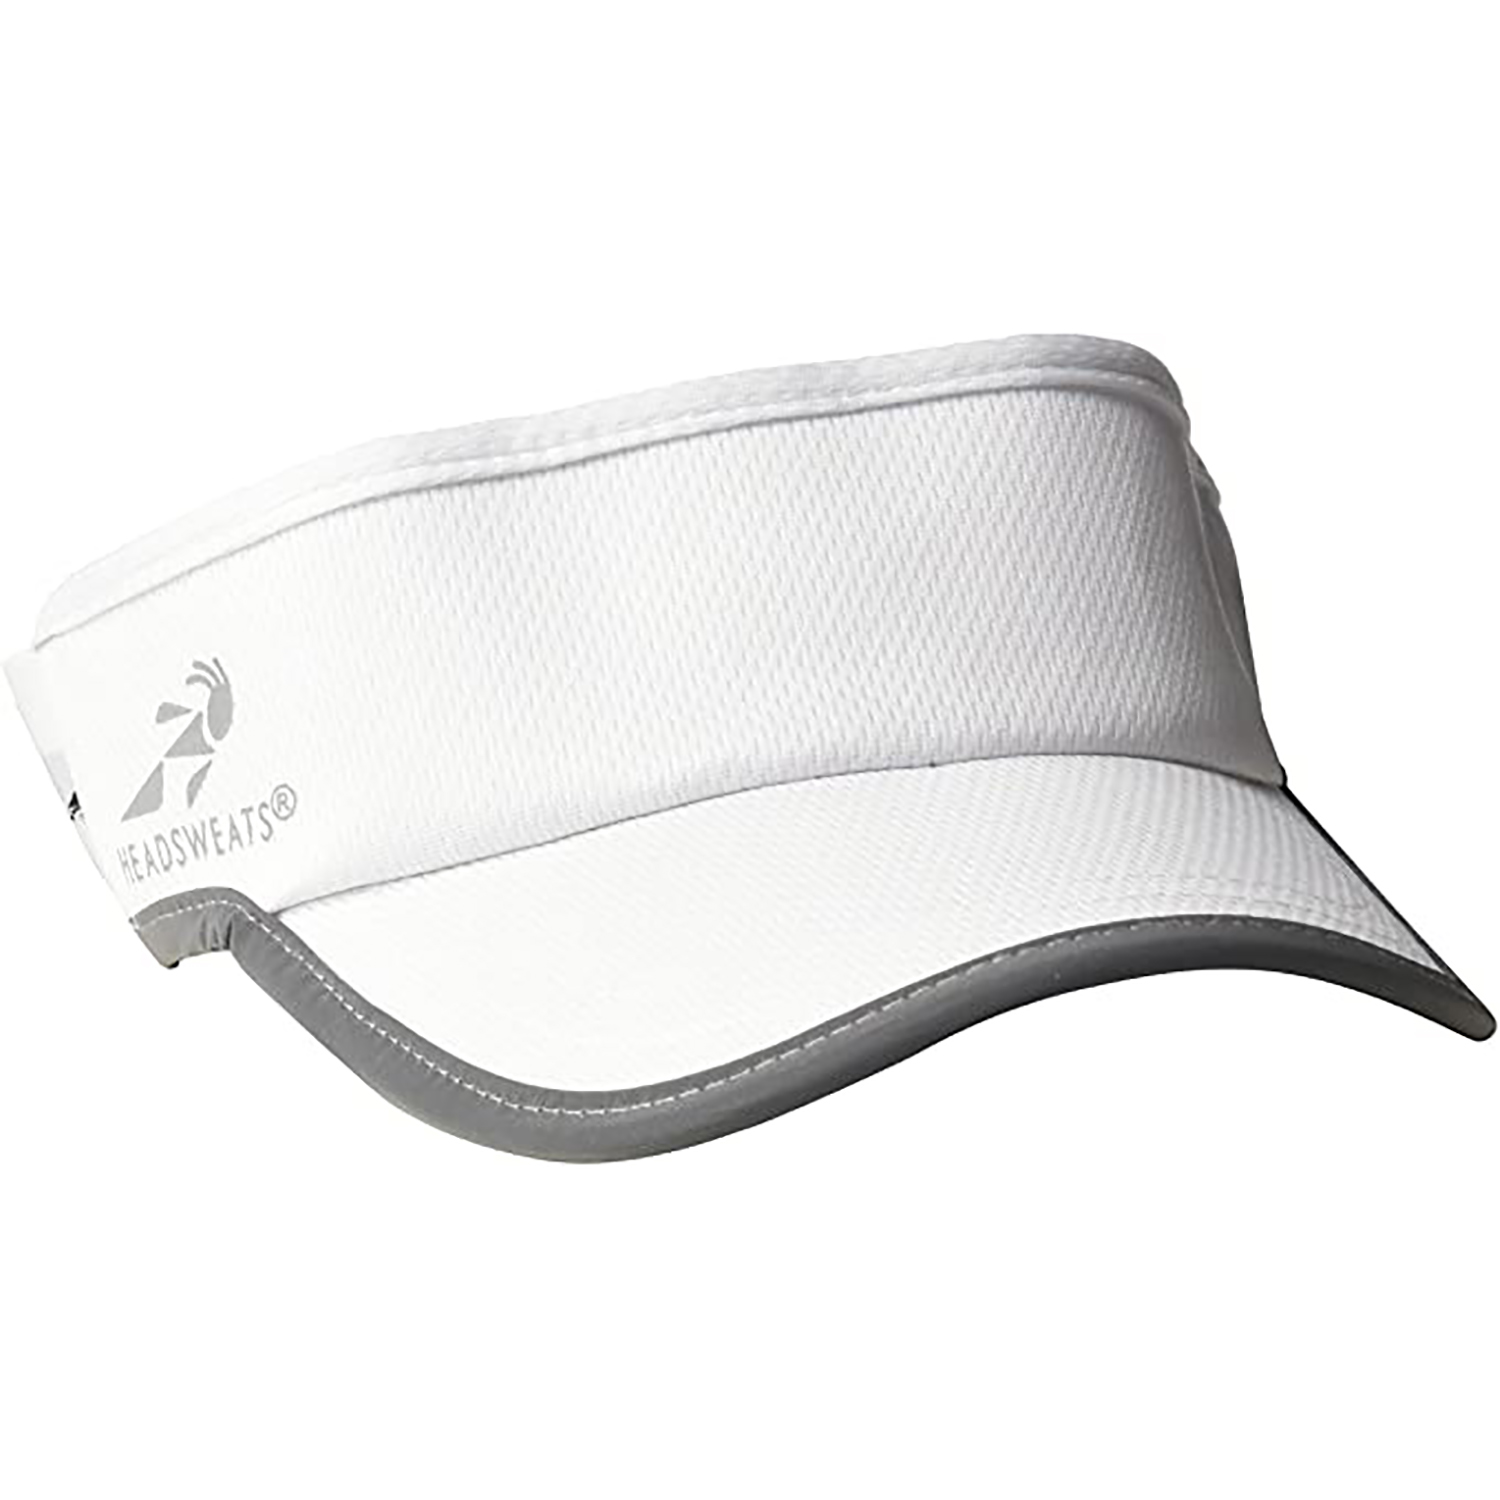 The Golf and Tennis Visor